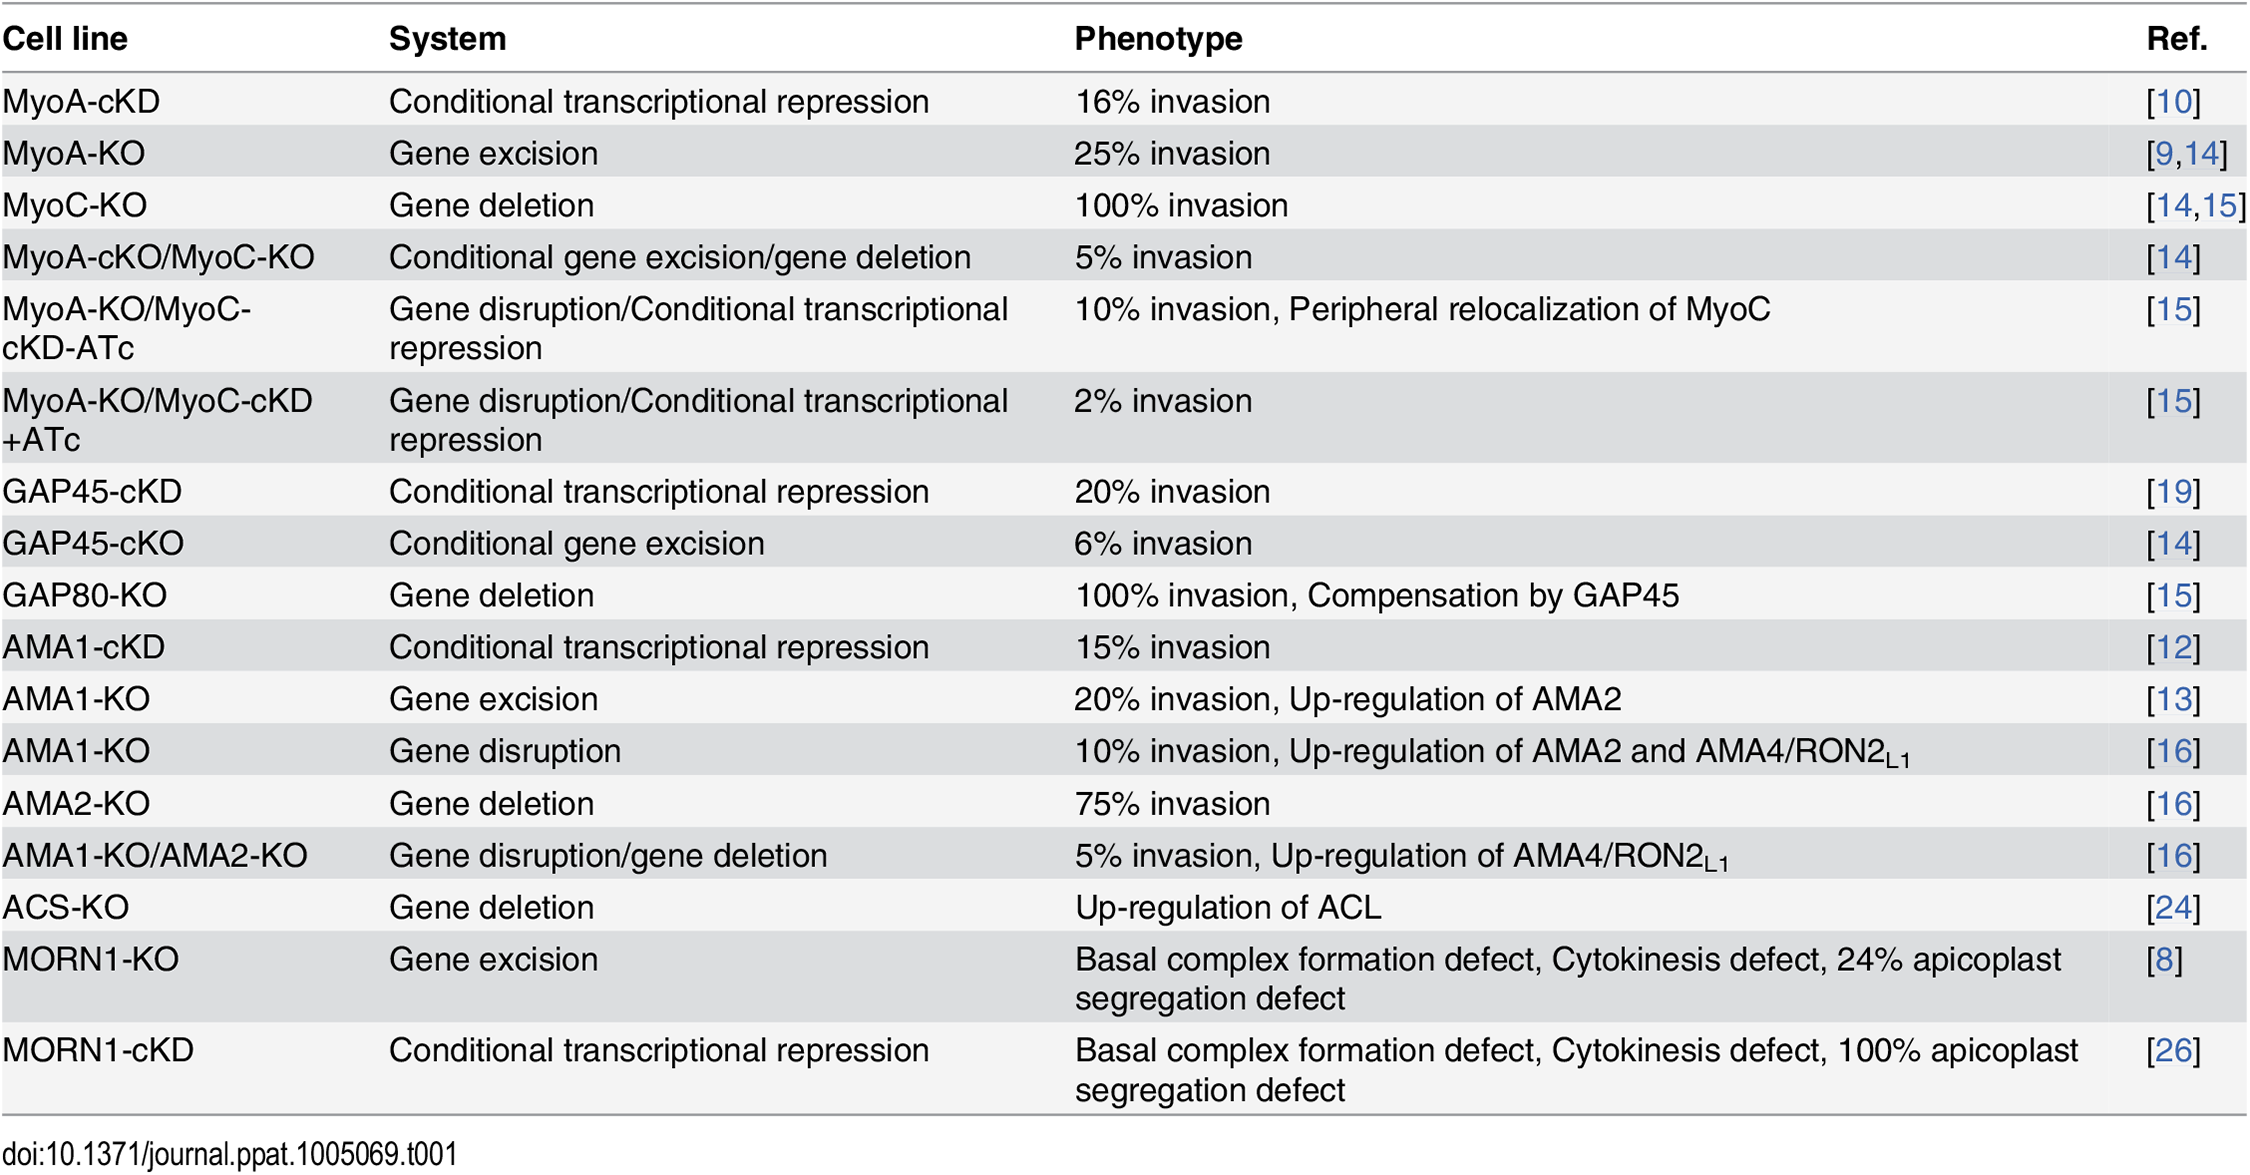 Summary of the phenotype and adaptation observed in the cell lines discussed in this review according to the technology used to investigate the function of the corresponding gene.